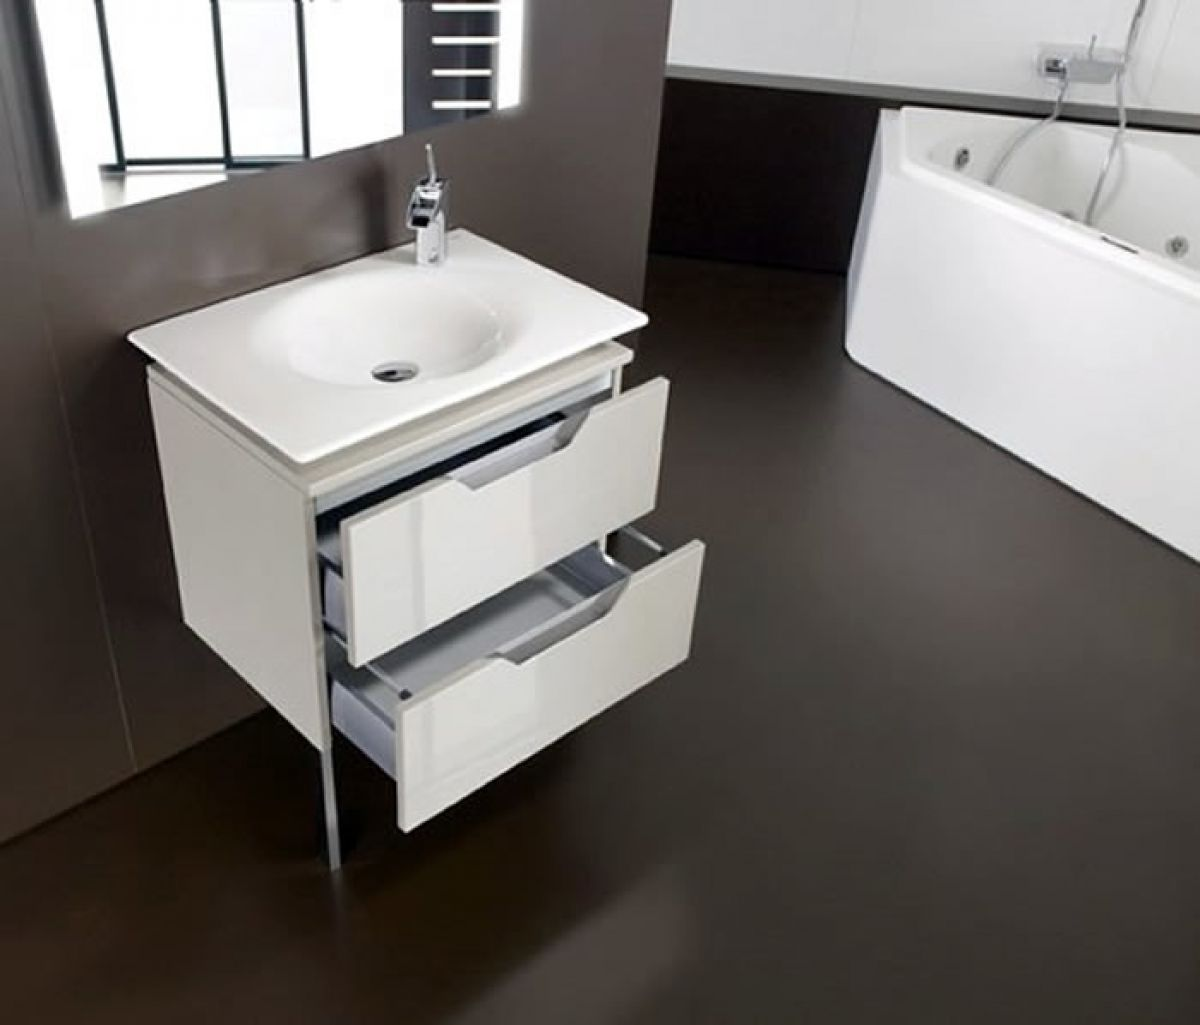 Roca kalahari 2 drawer single basin unit uk bathrooms for Roca kalahari